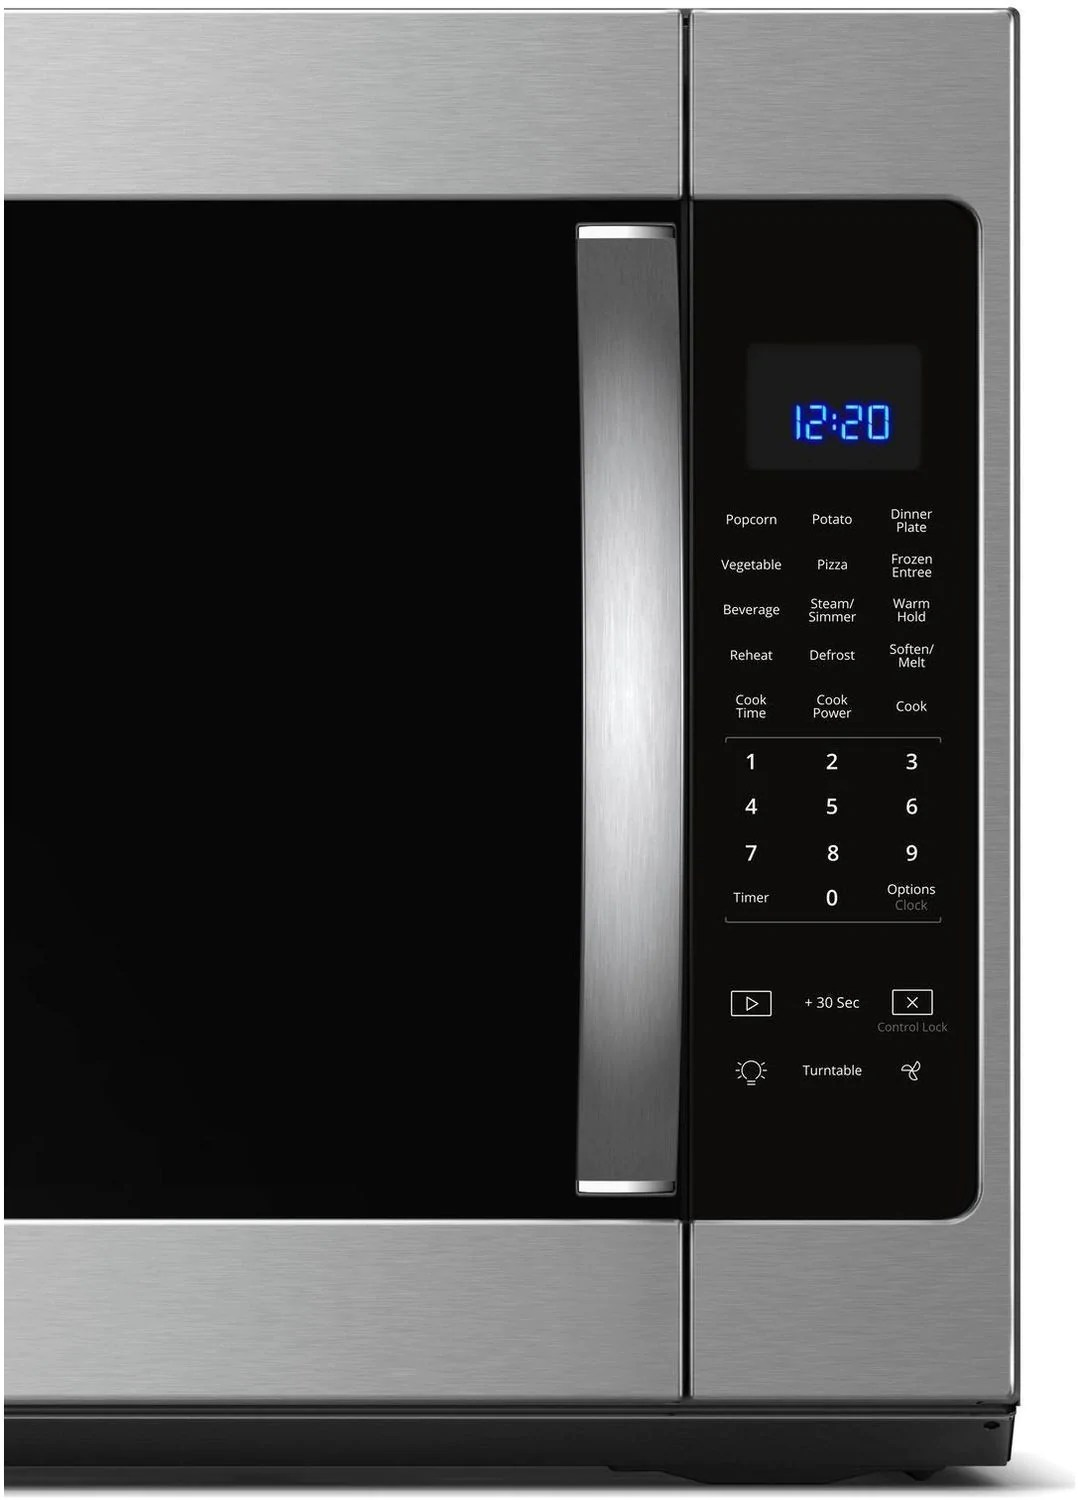 whirlpool stainless steel over the range microwave 2 1 cu ft ywmh53521hz